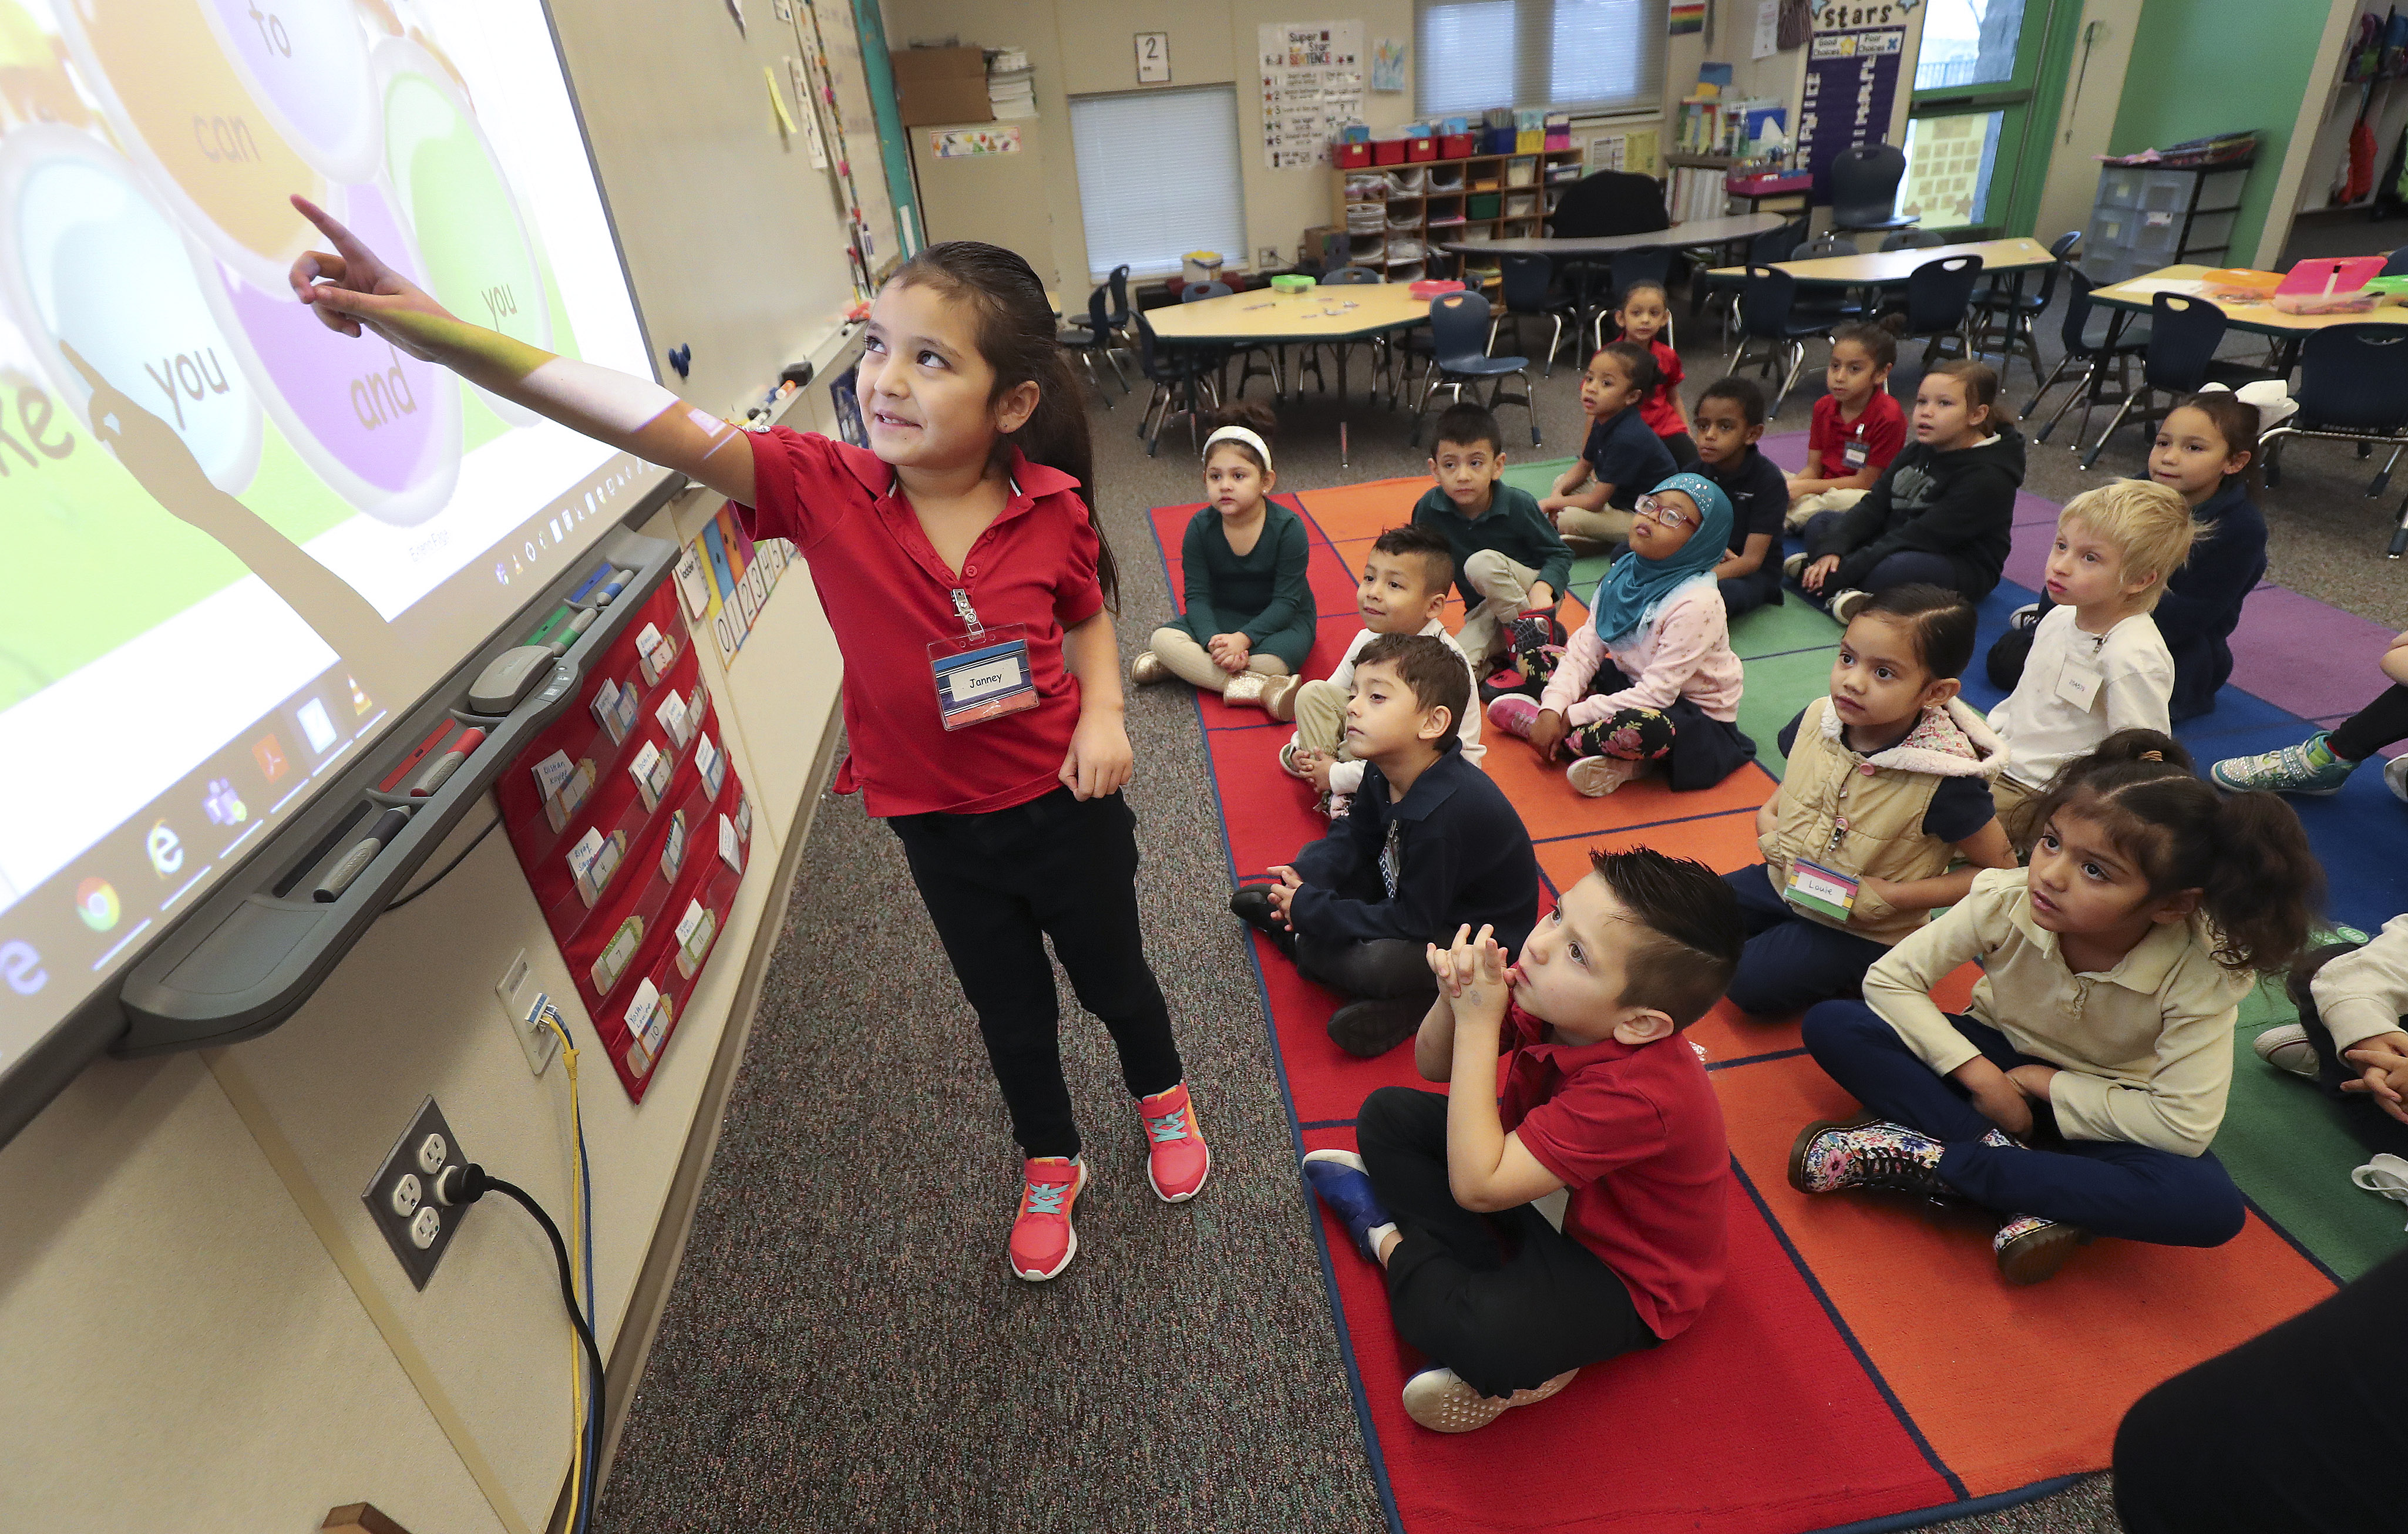 North Star Elementary School kindergarten student Janney answers a question in class in Salt Lake City on Wednesday, Dec. 4, 2019. The State School Board is asking lawmakers for money to enhance optional full-day kindergarten programs.